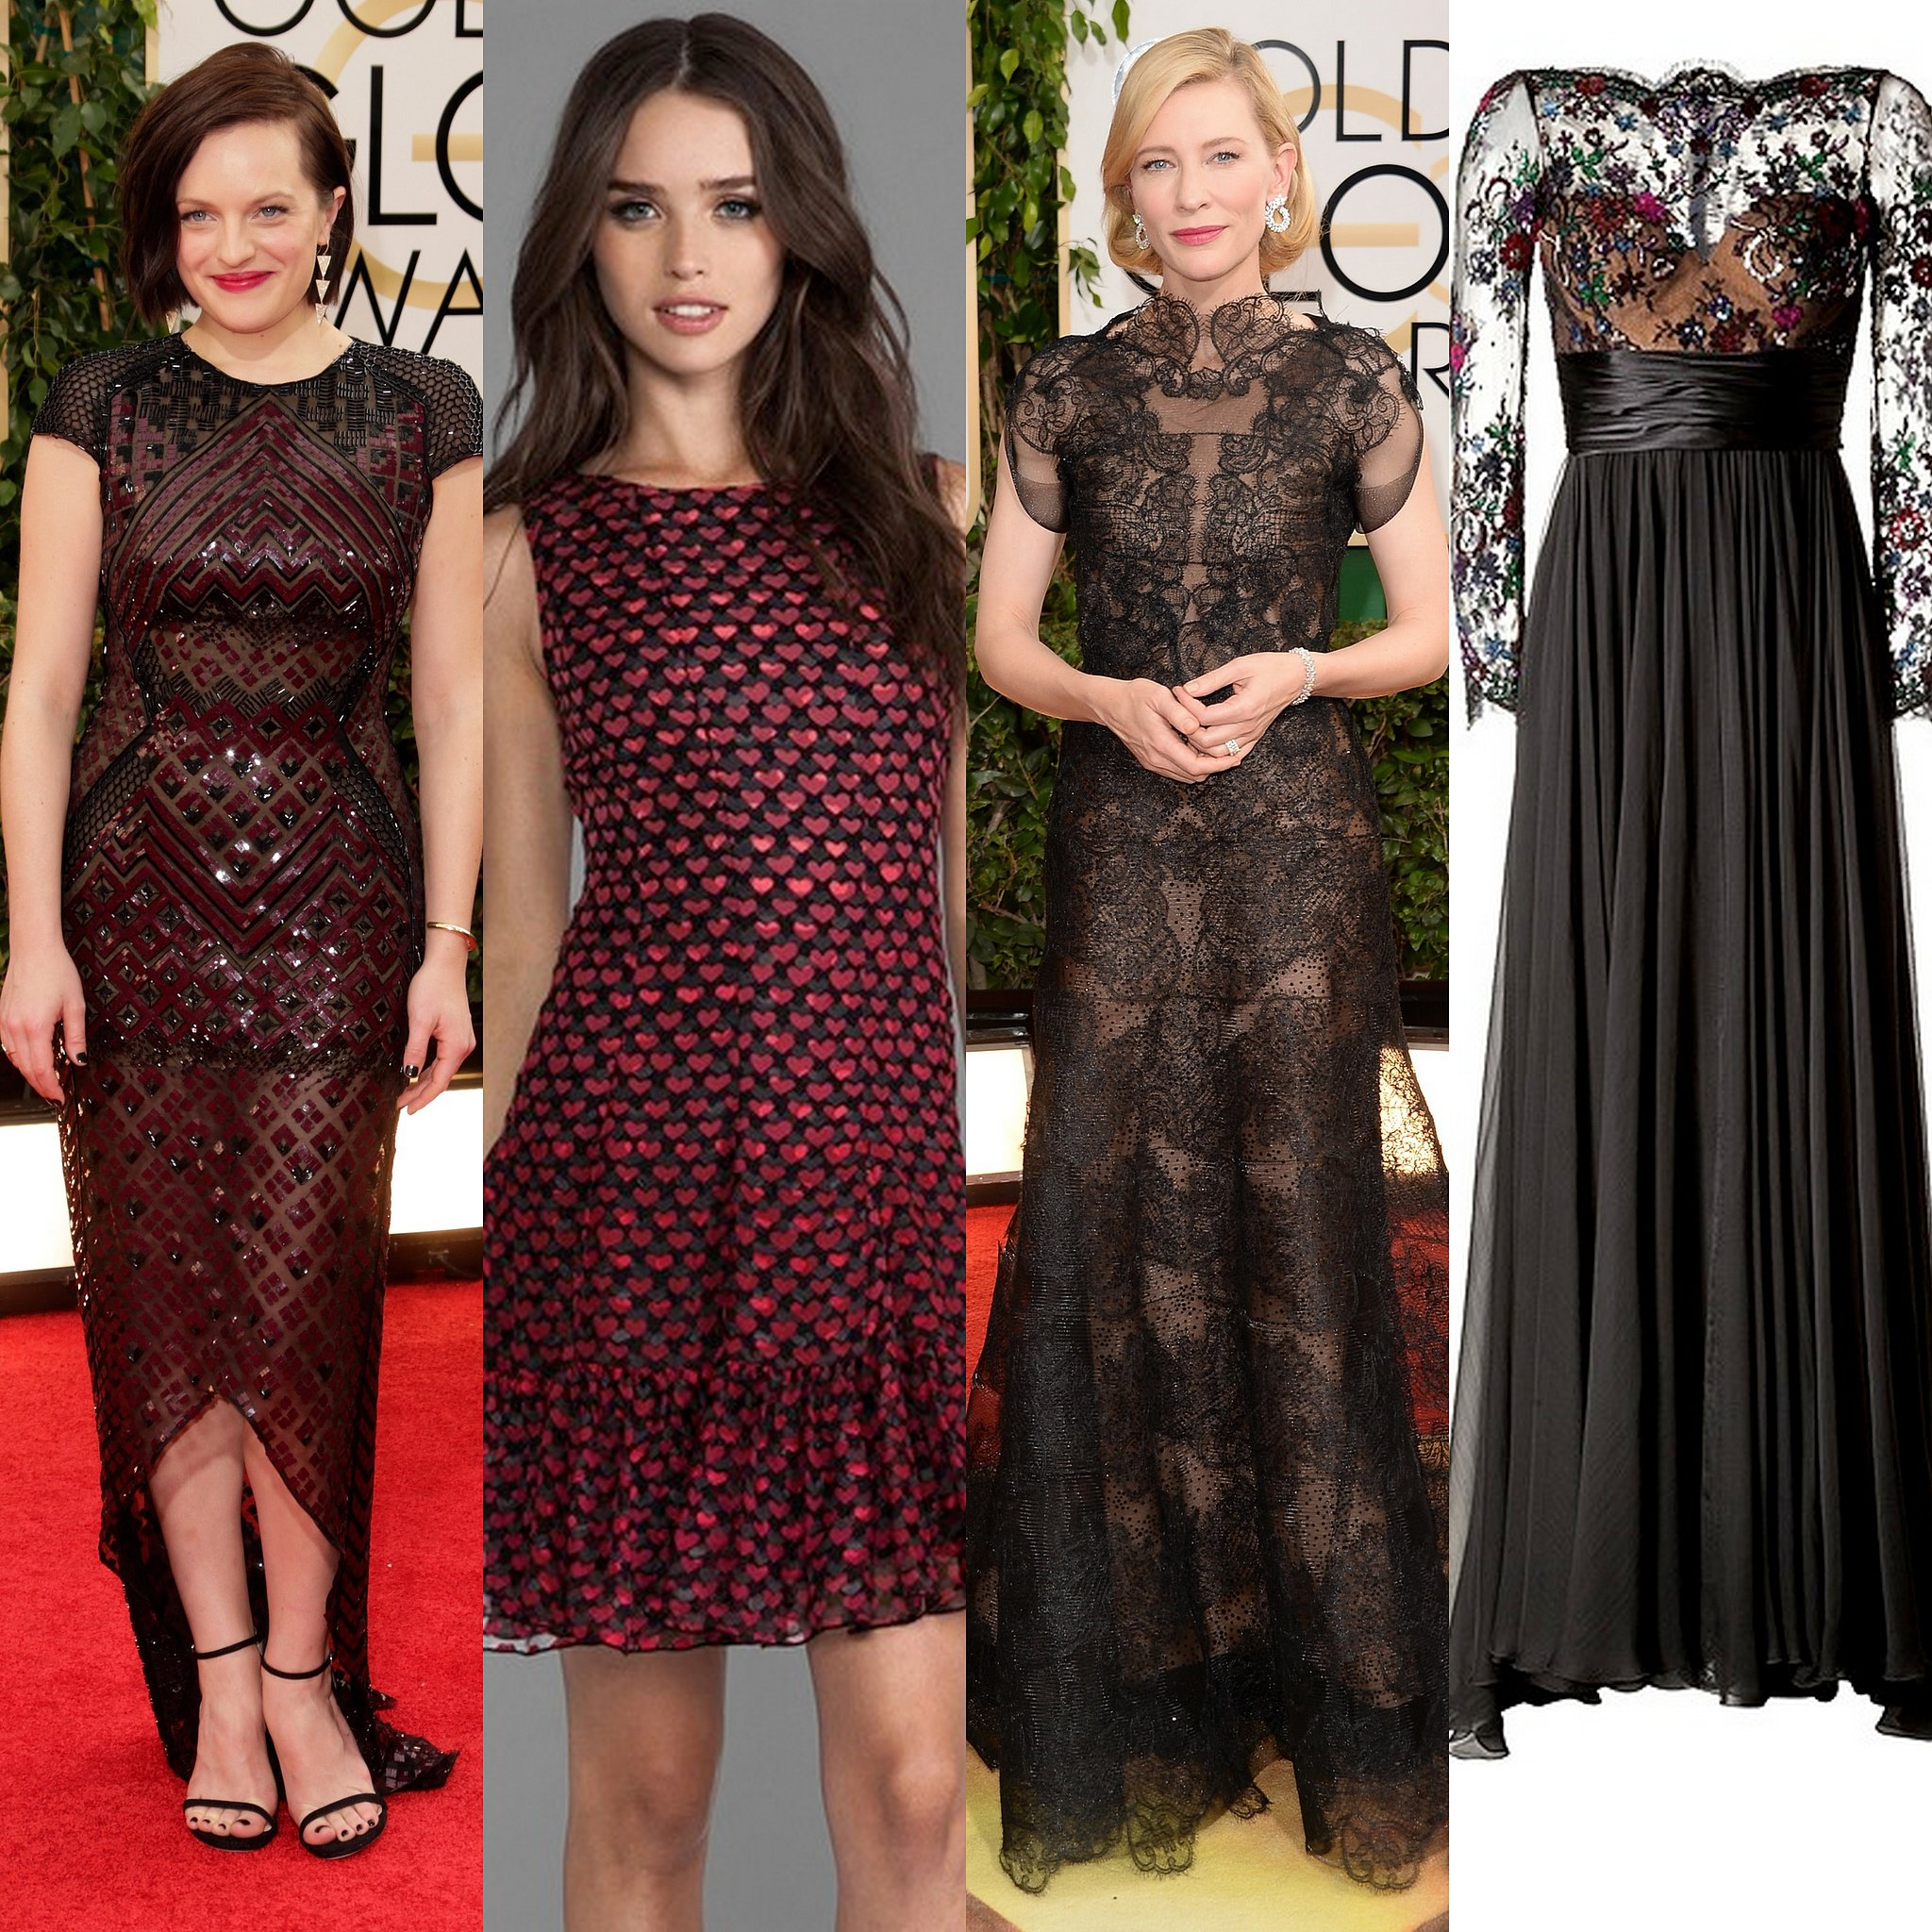 Elisabeth Moss is shining in all of the right places in her geometric gown, while Cate Blanchett's lace gown makes her radiate.